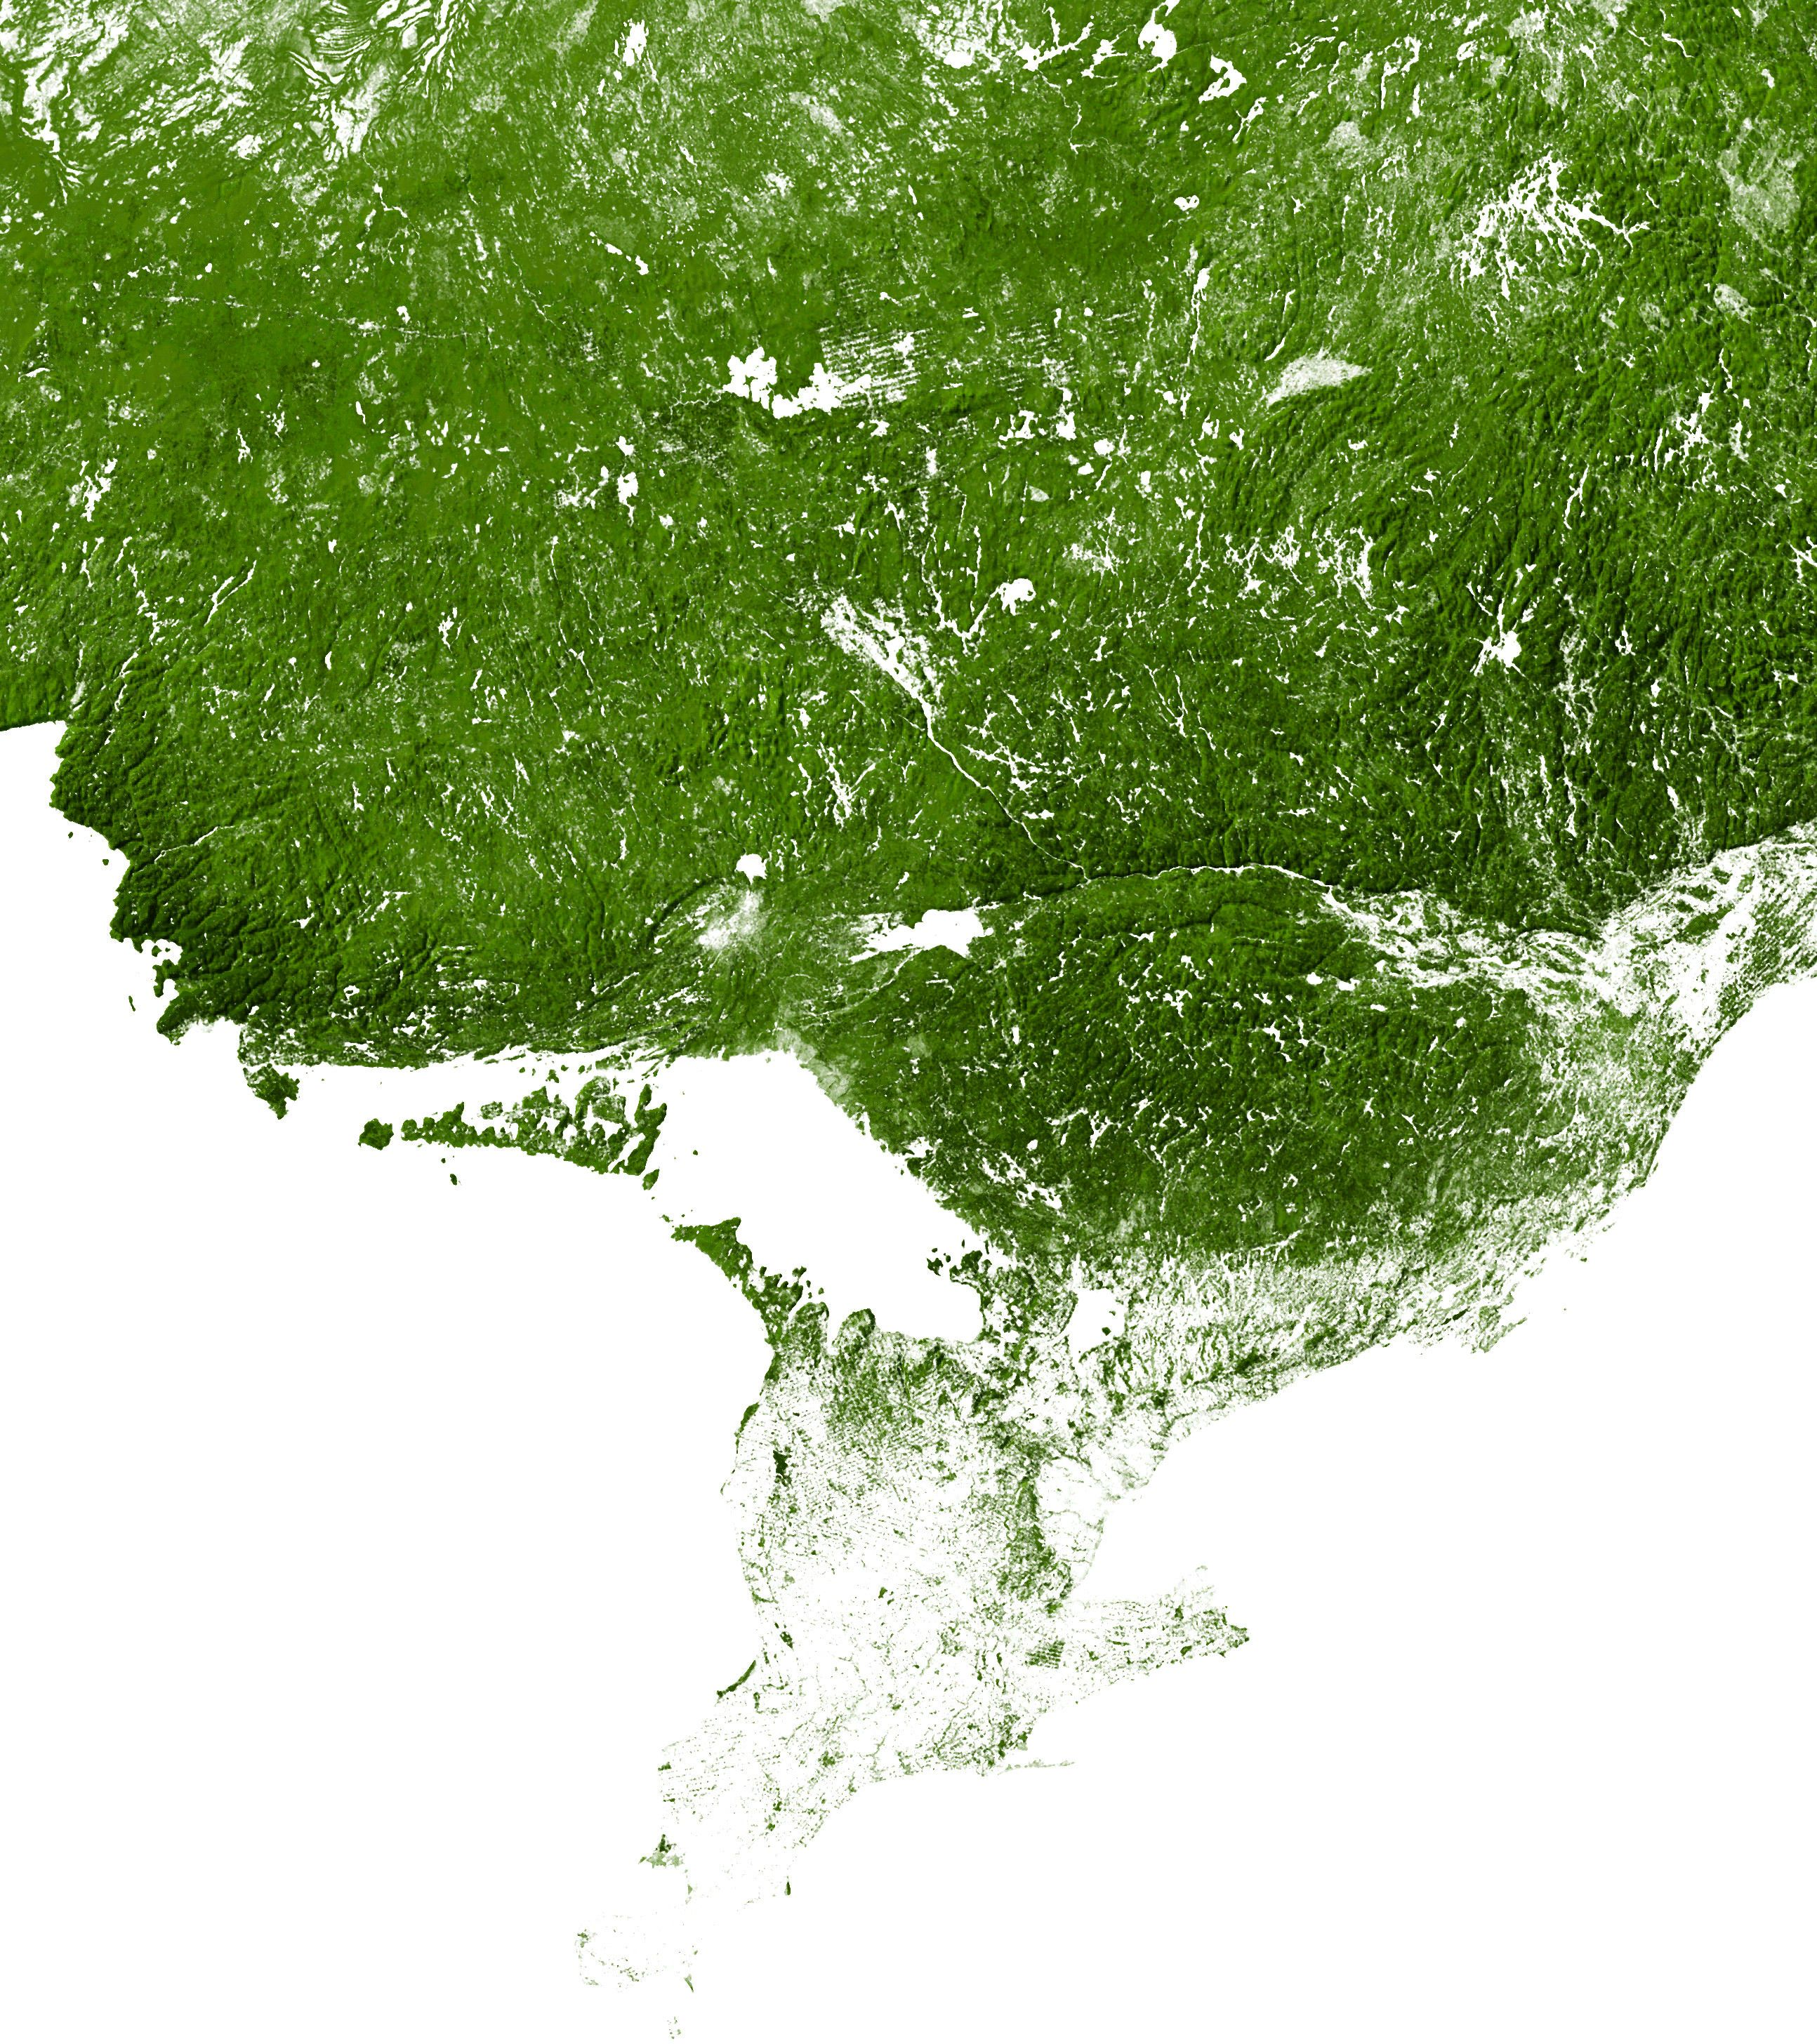 Southern Ontario and the surrounding area mapped